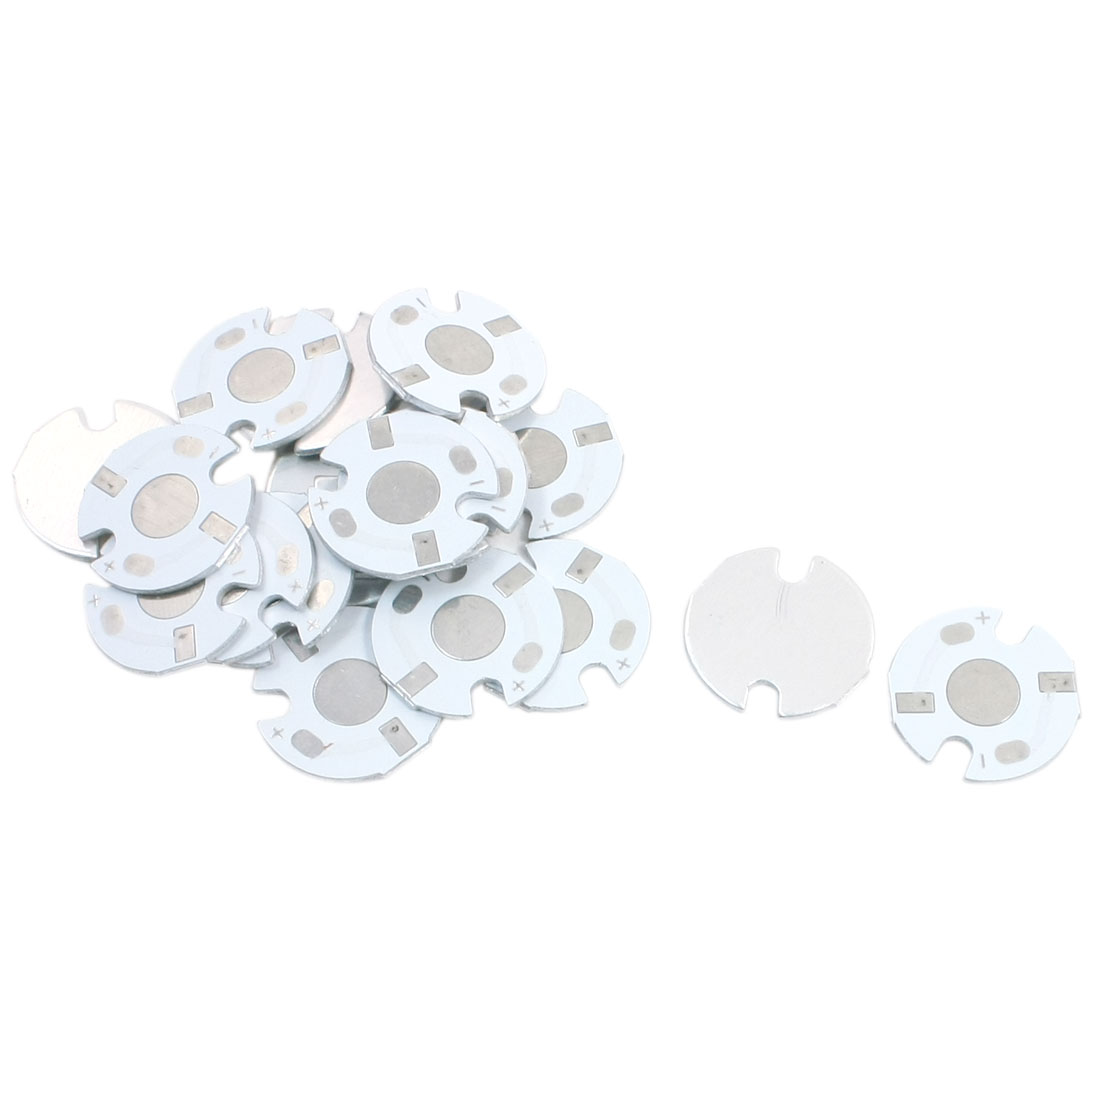 20Pcs 16mm Dia Circle LED Aluminum PCB Circuit Board for 1 x 1W/3W/5W